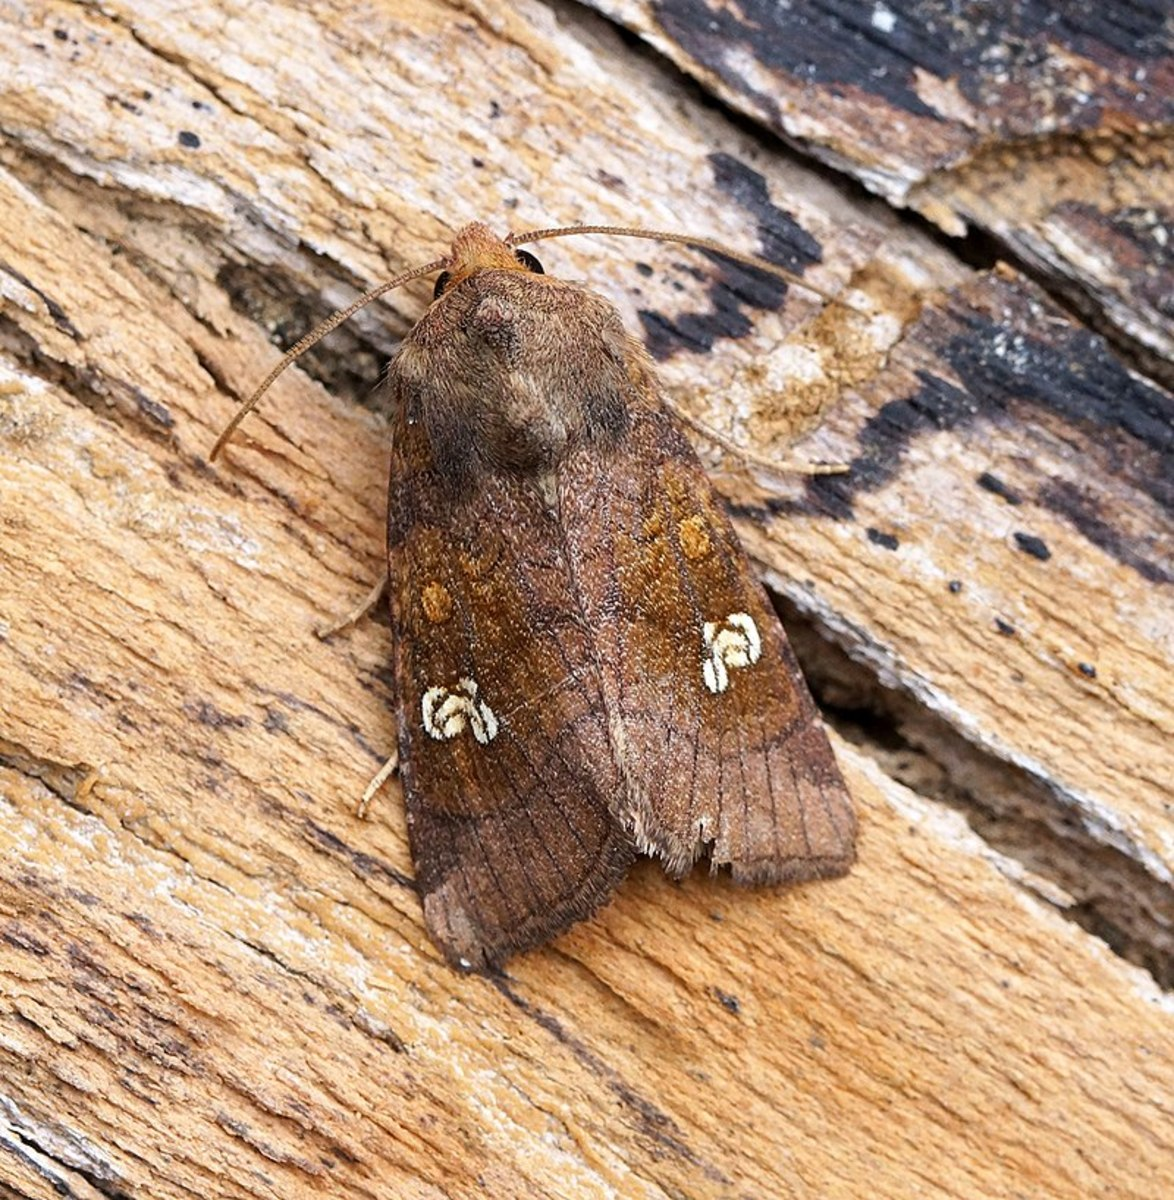 A Dark Winged Moth Whose Larvae is a Cutworm